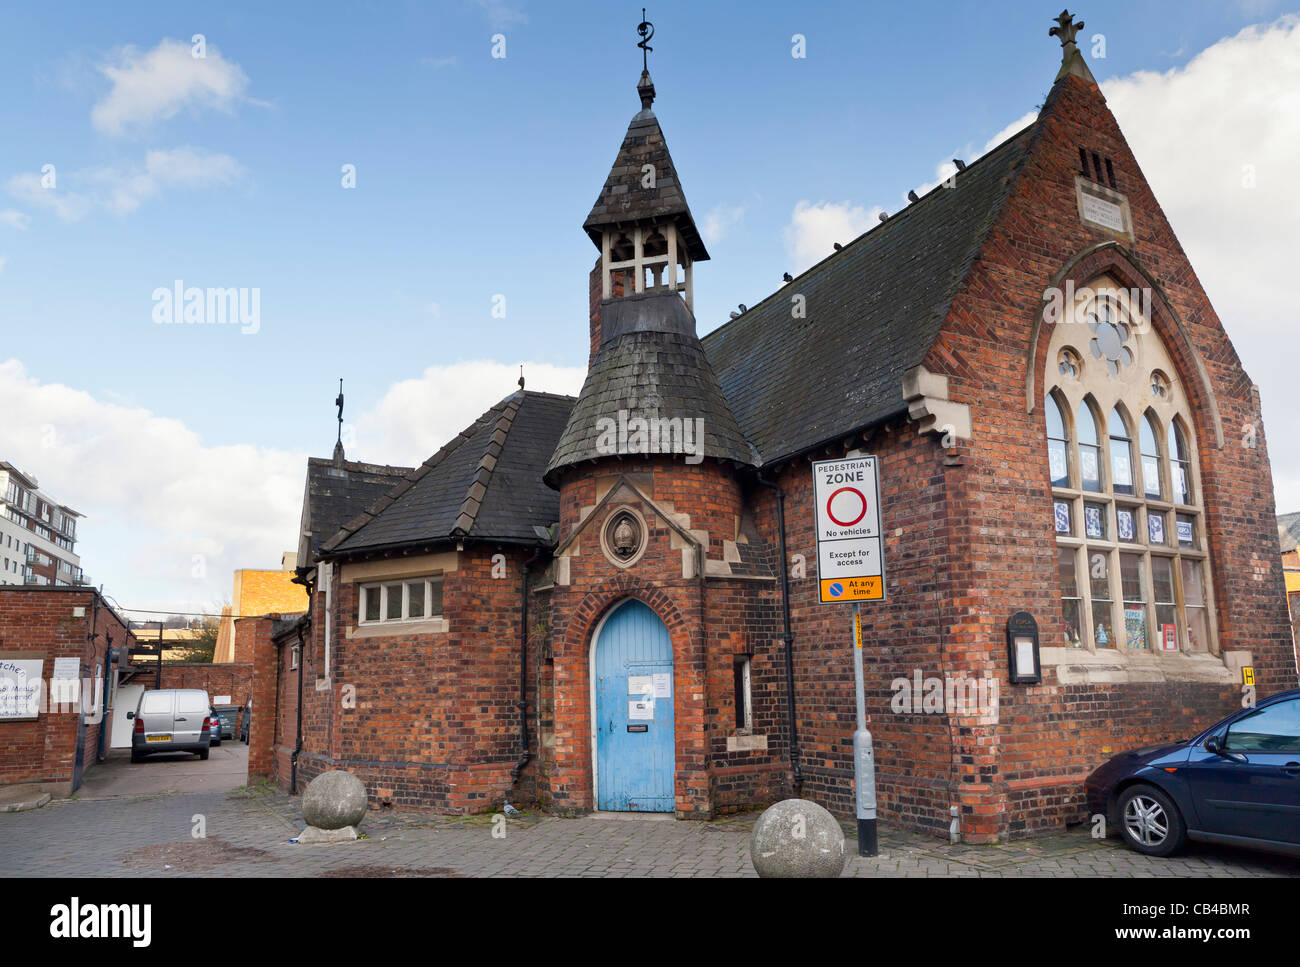 RSPCA building - Lincoln, Lincolnshire, UK, Europe - Stock Image